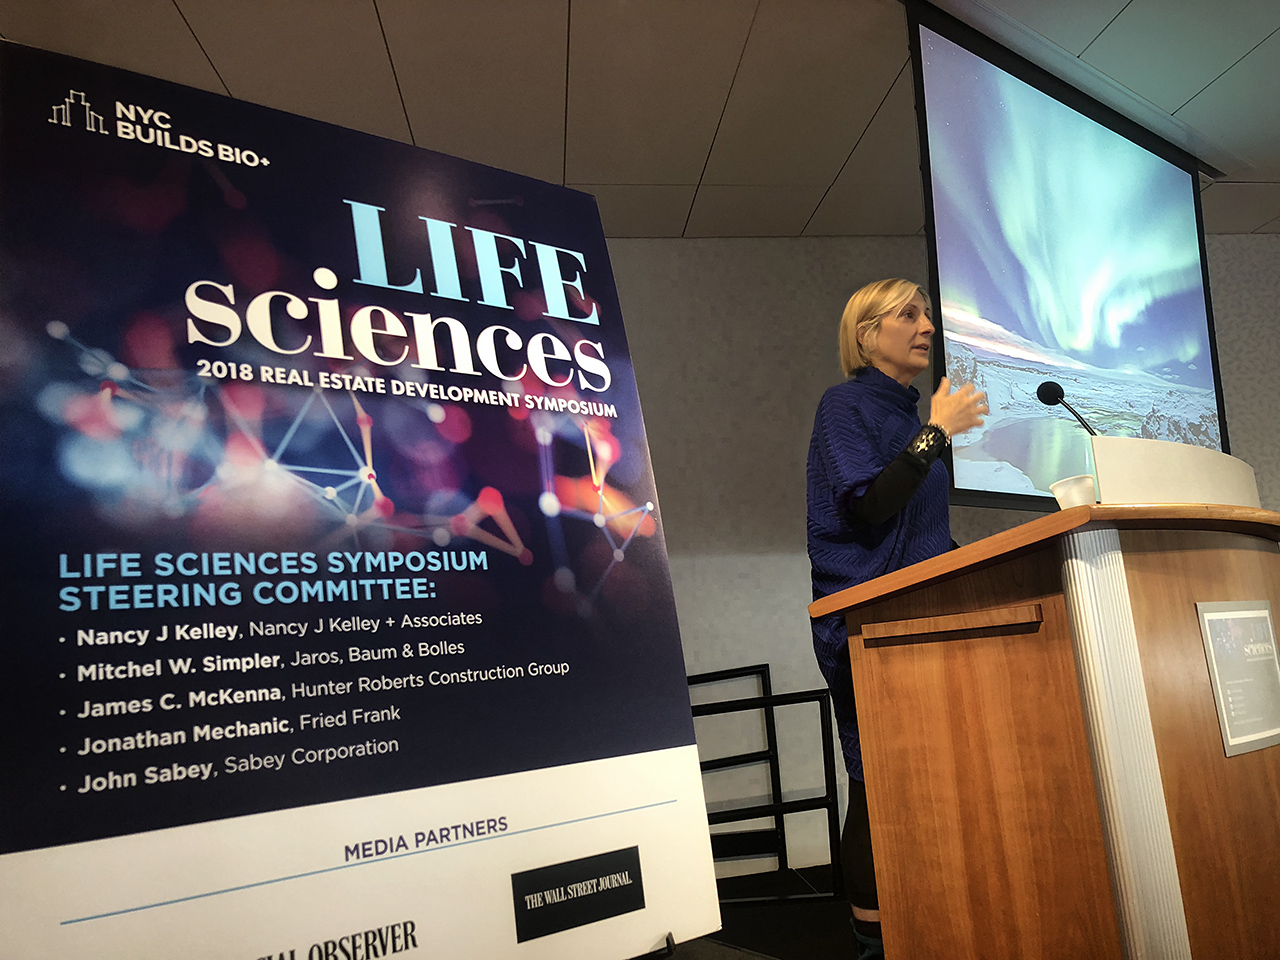 grimanesa amoros gives a lecture for the Life Sciences Symposium